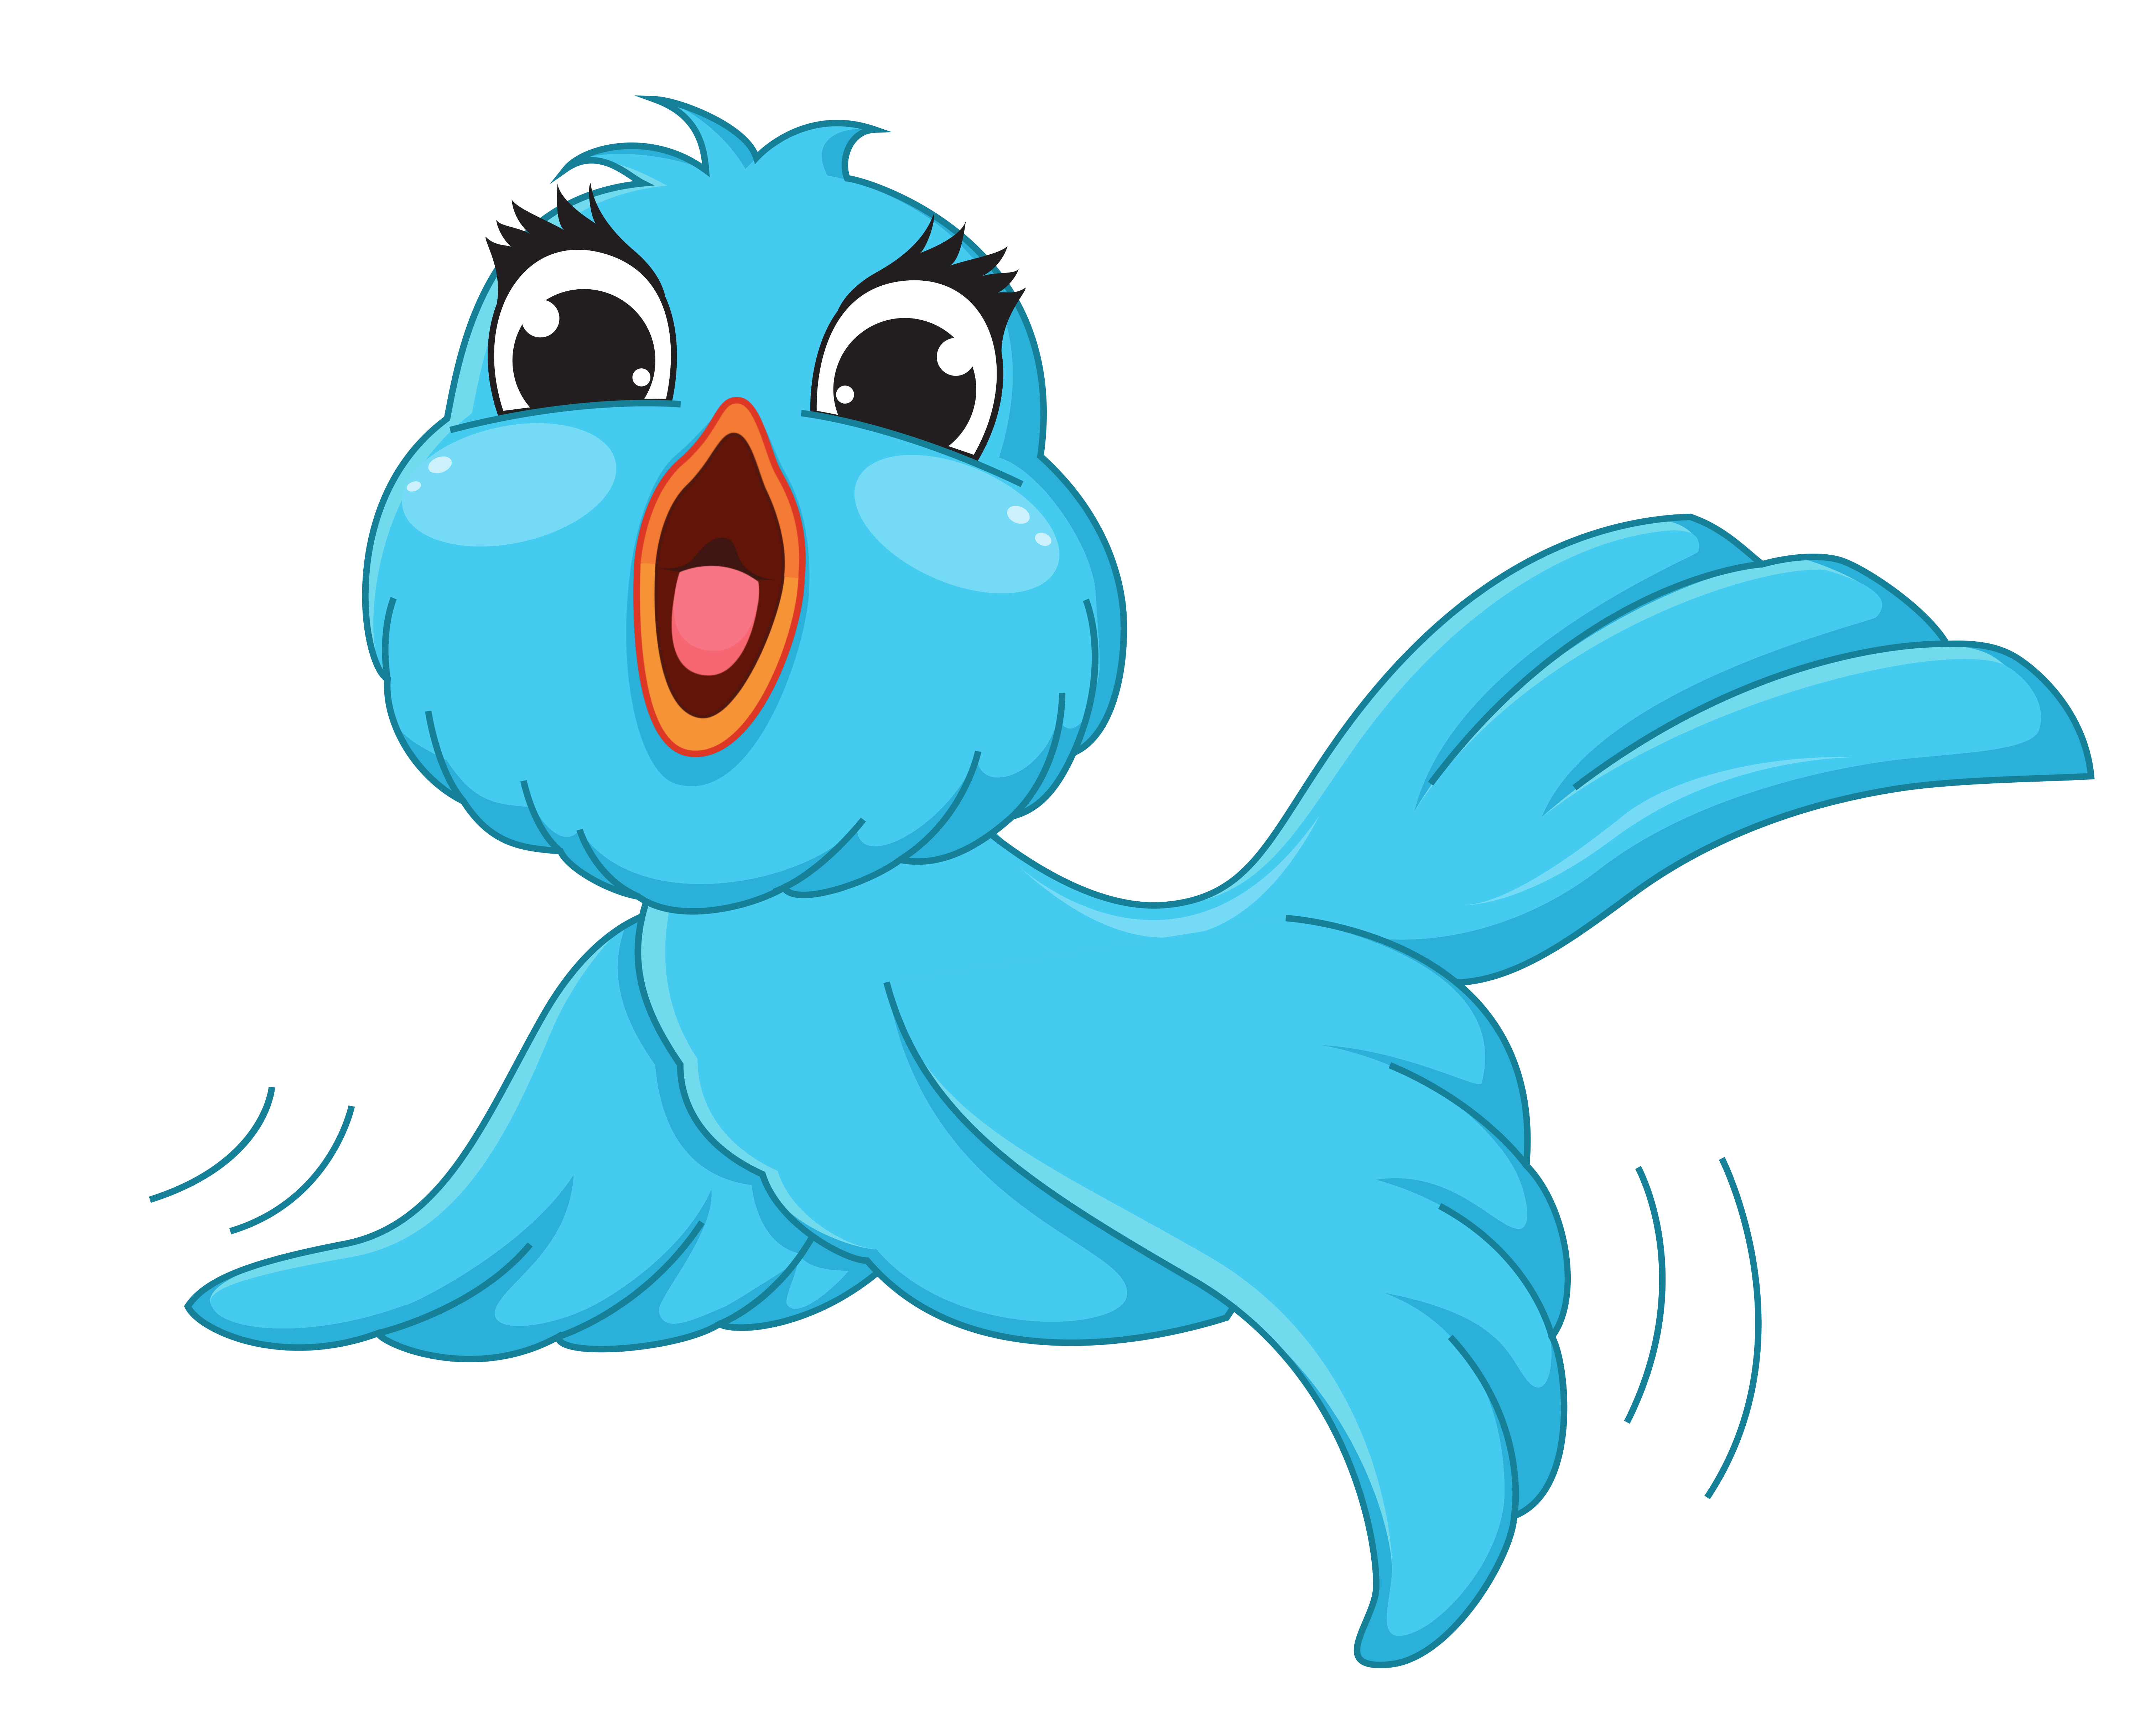 Birds clipart transparent background. Blue bird png cartoon